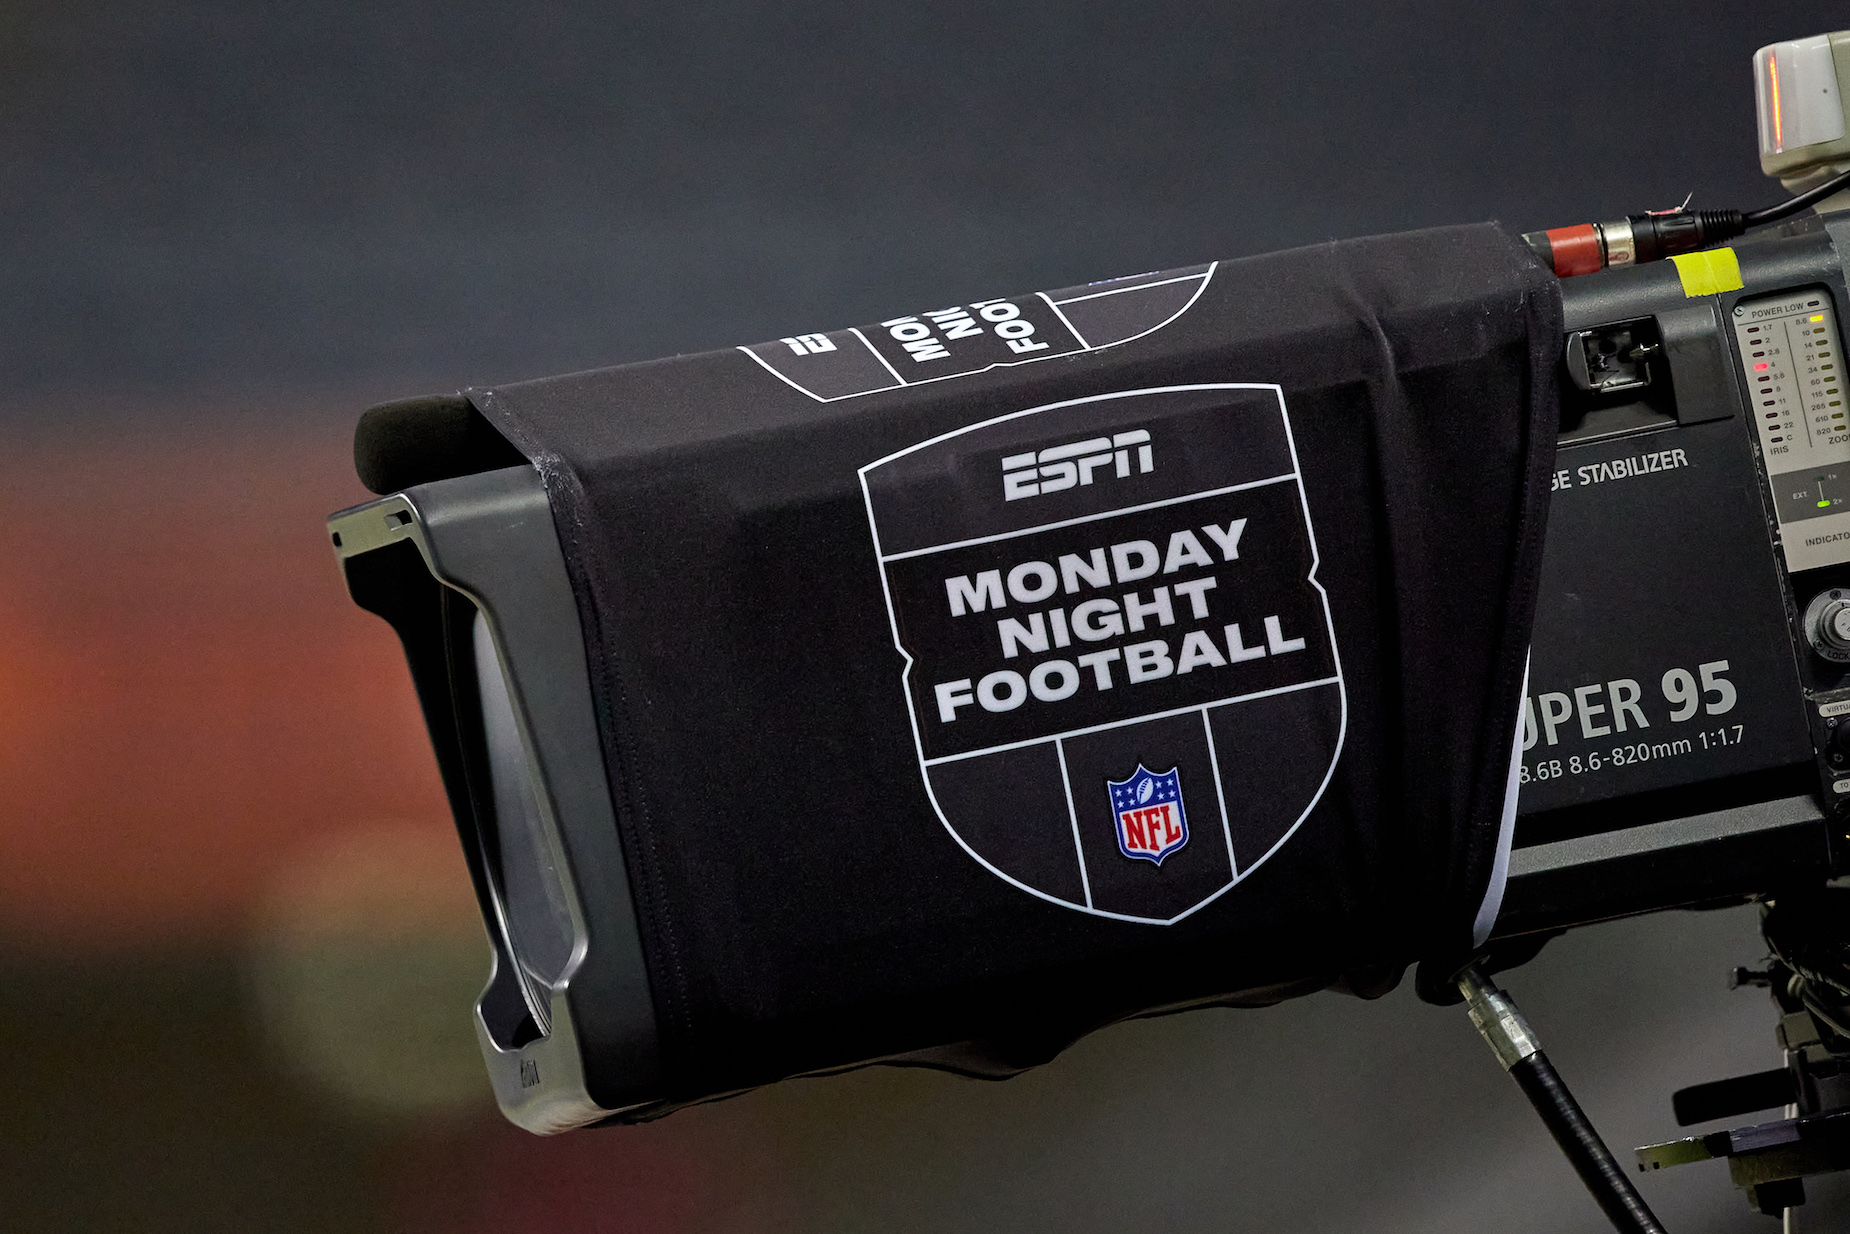 Why are there two Monday Night Football games during Week 13 of the NFL season?